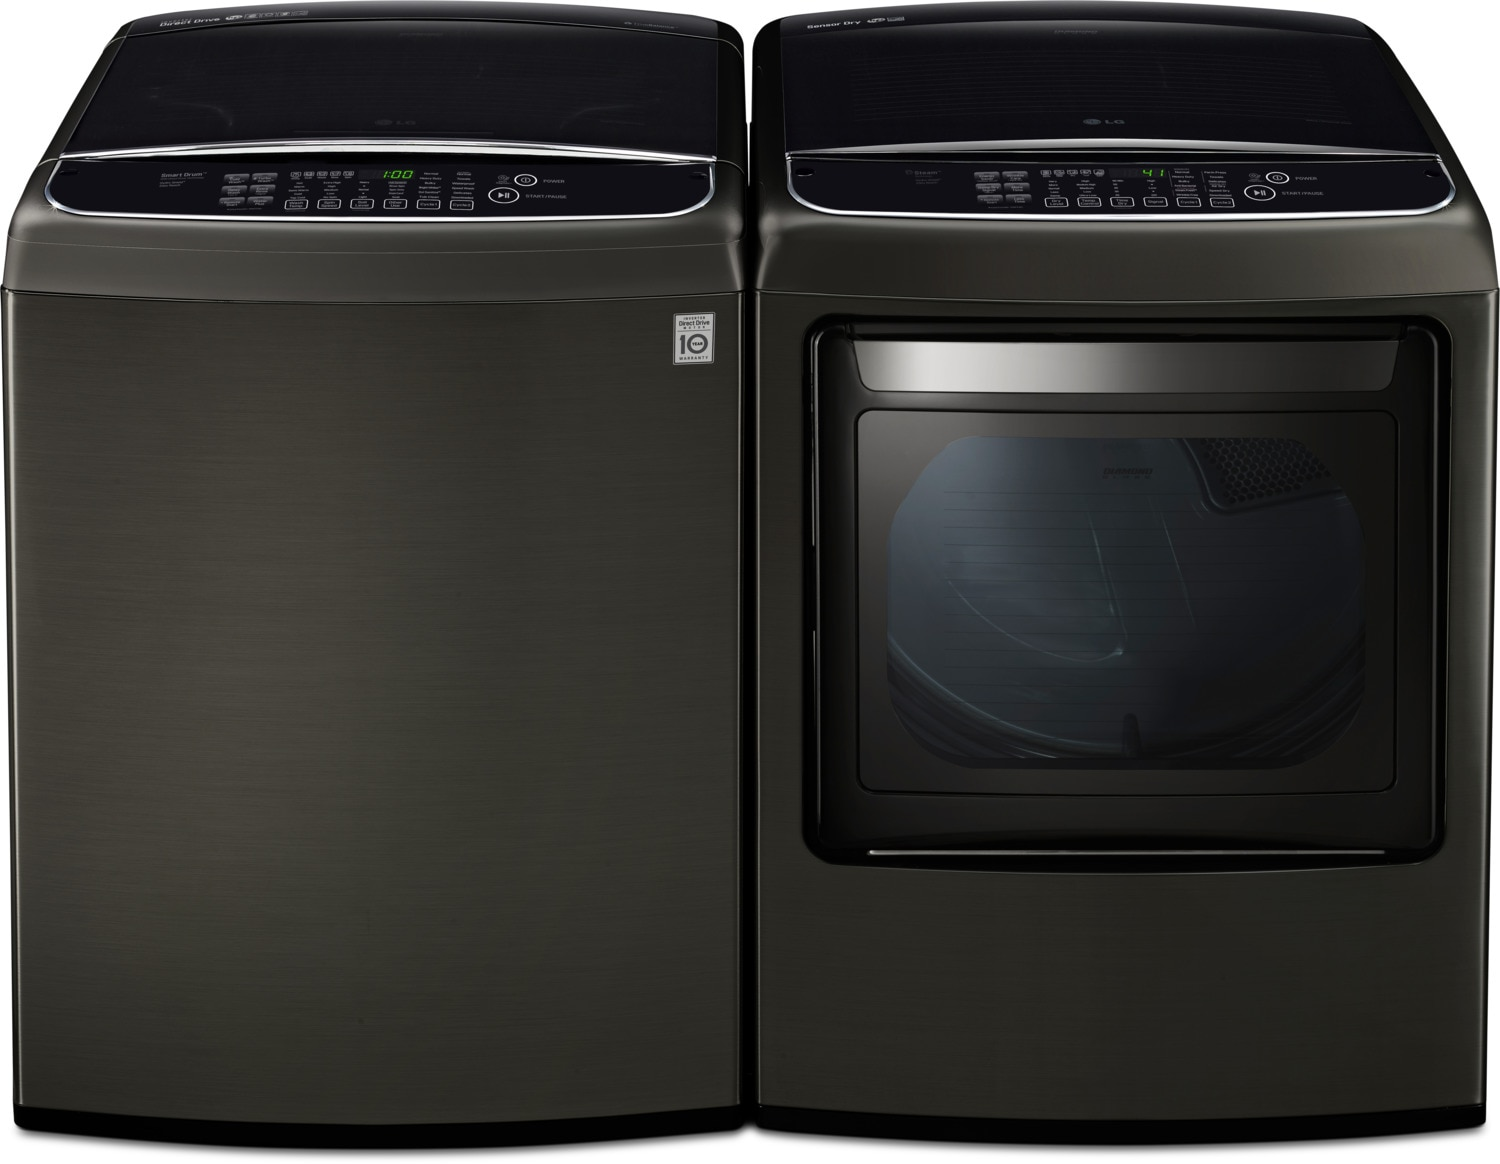 LG 5.8 Cu. Ft. Top-Load Washer and 7.3 Cu. Ft. Electric Steam Dryer